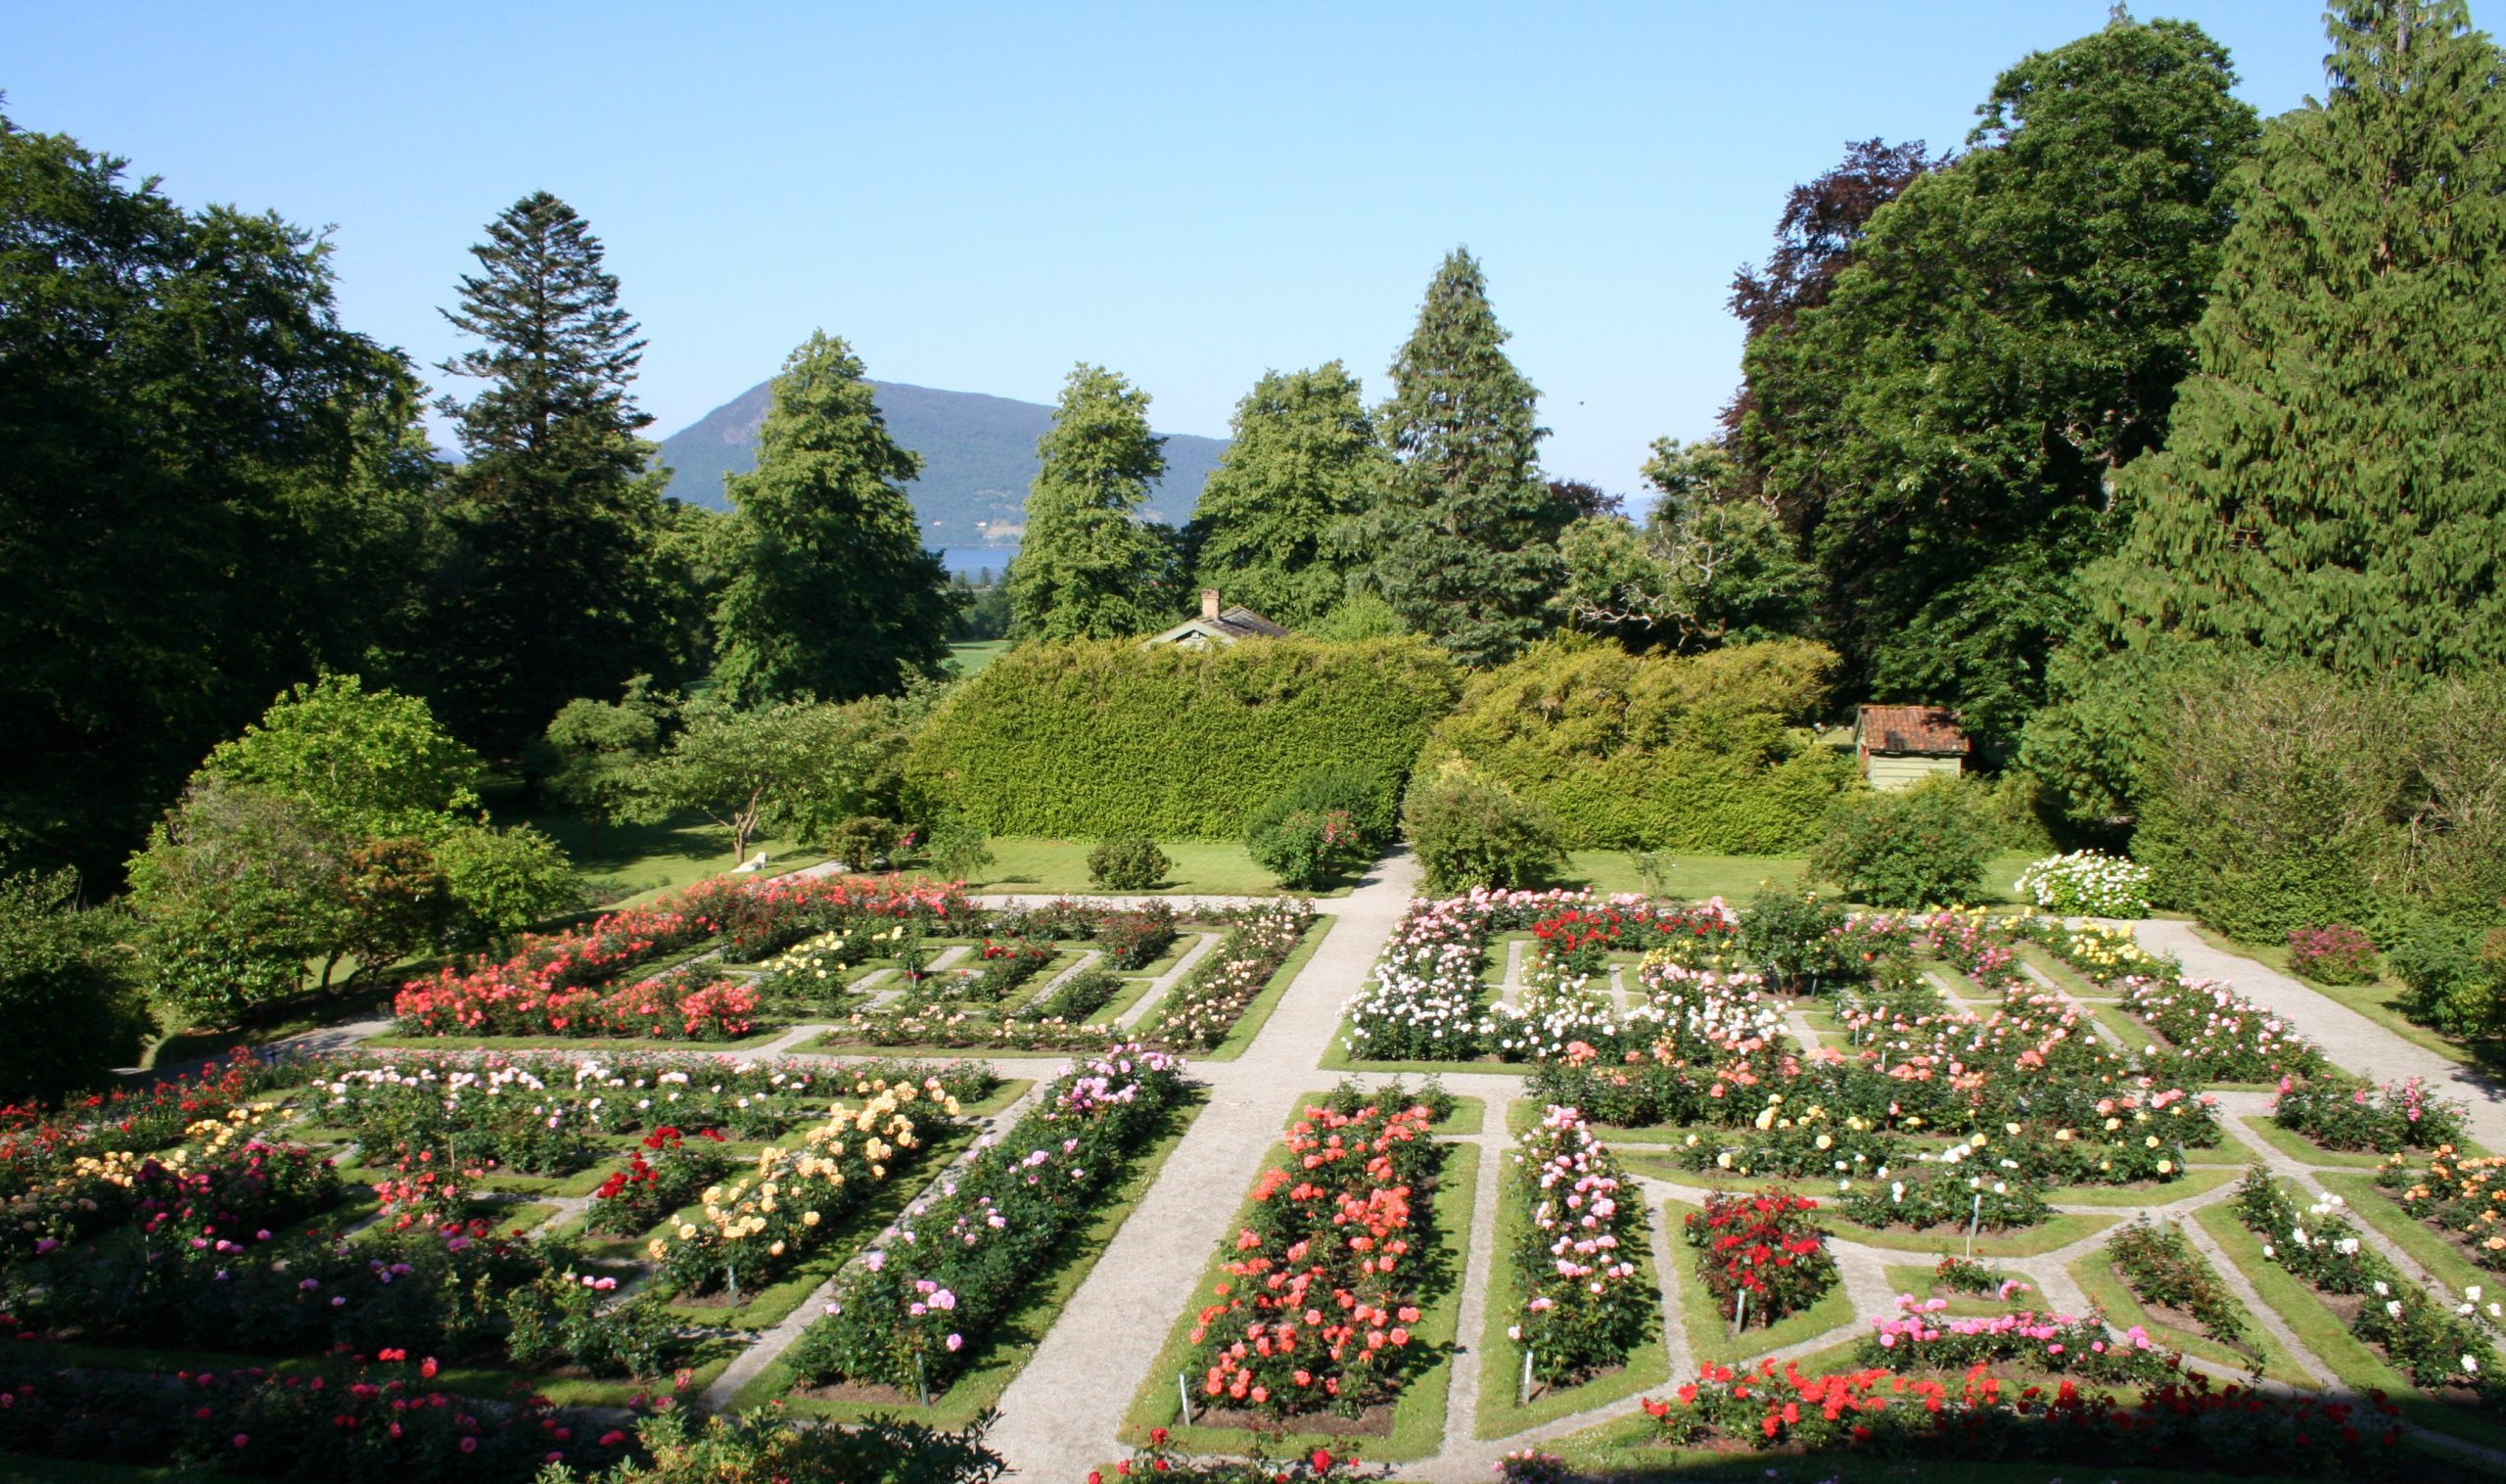 Some of the gardens are French and structured.